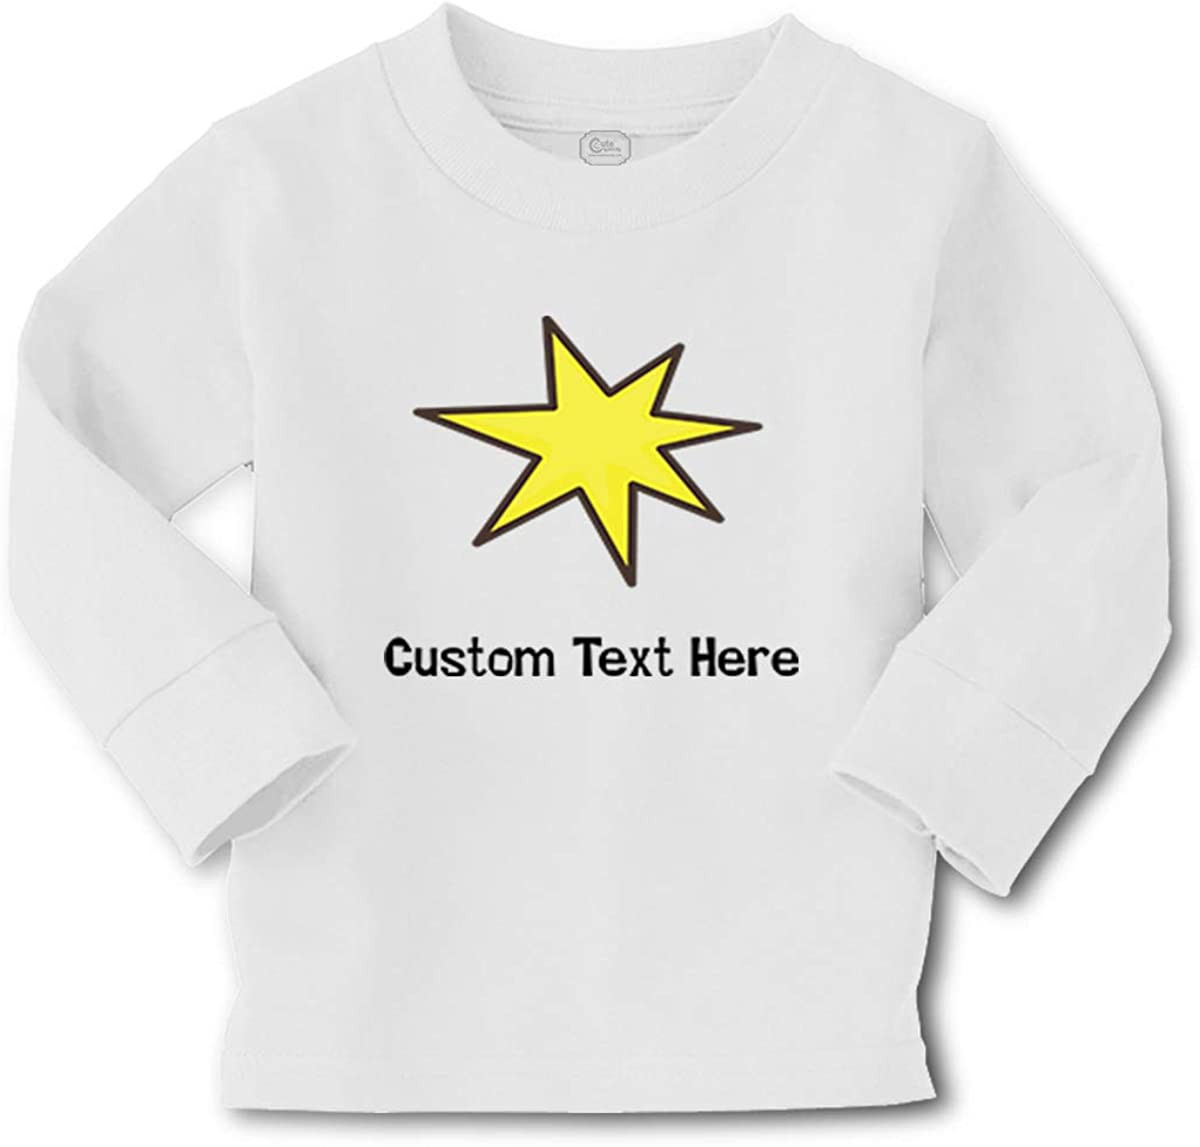 Cute Rascals Kids Long Sleeve T Shirt Star Yellow Cotton Boy & Girl Clothes Funny Graphic Tee